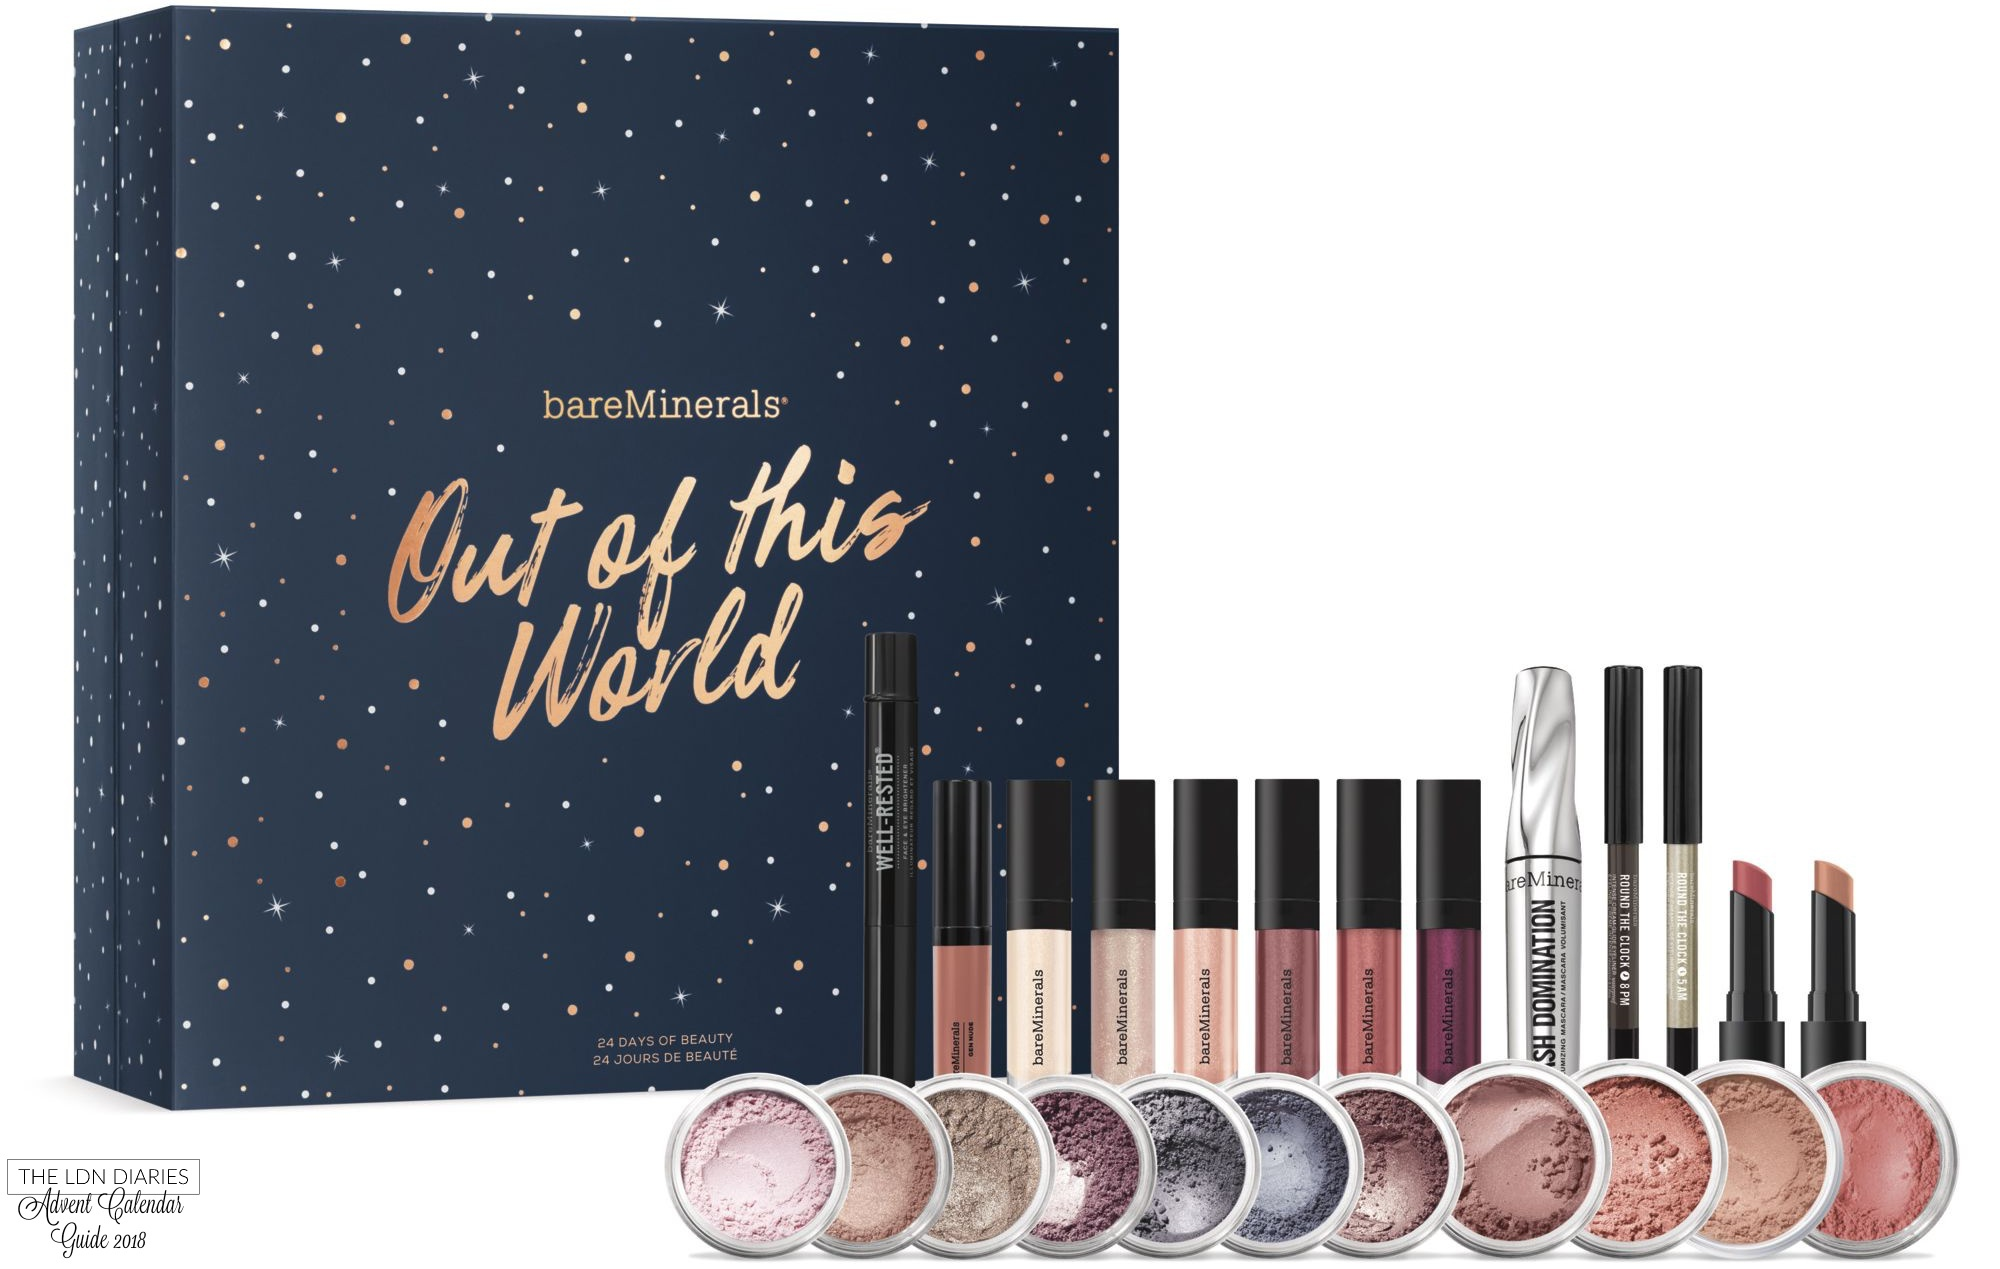 Bare Minerals Advent Calendar 2018 - The LDN Diaries